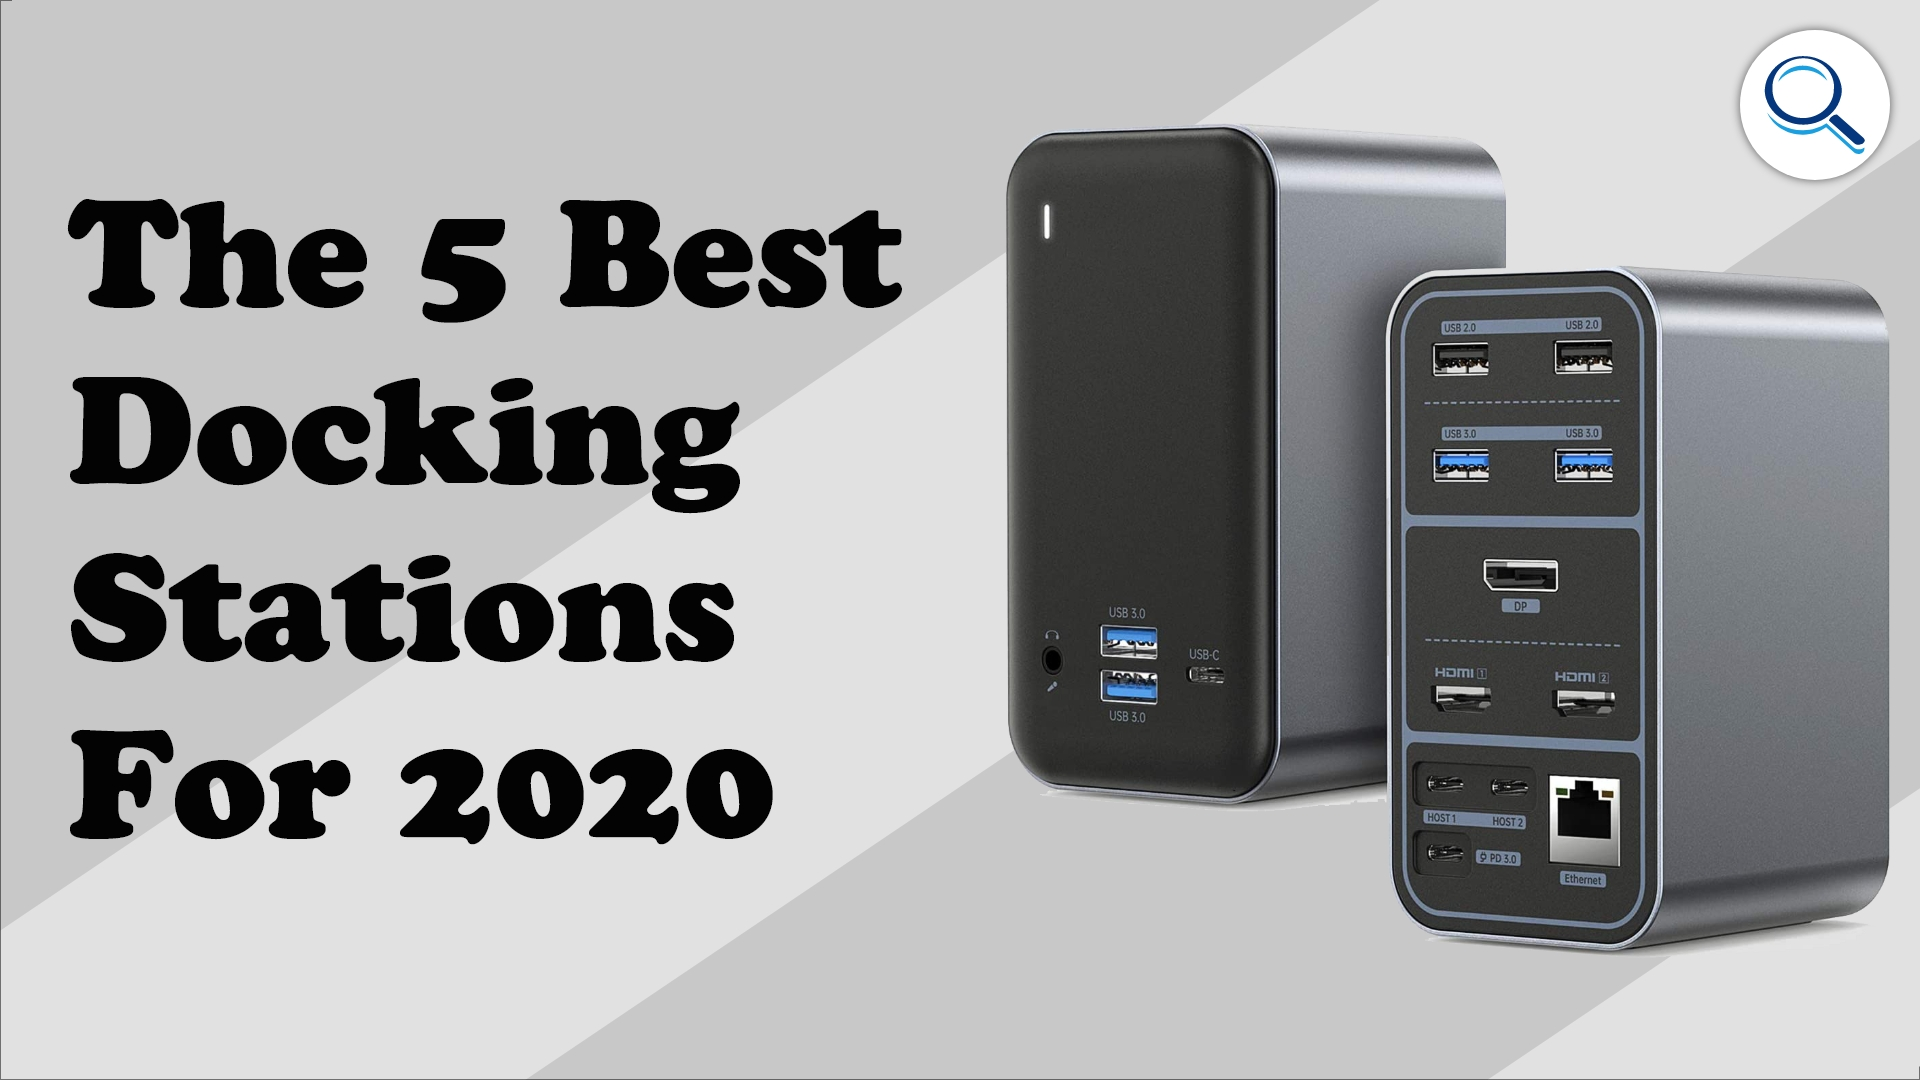 The 5 Best Docking Stations of 2020